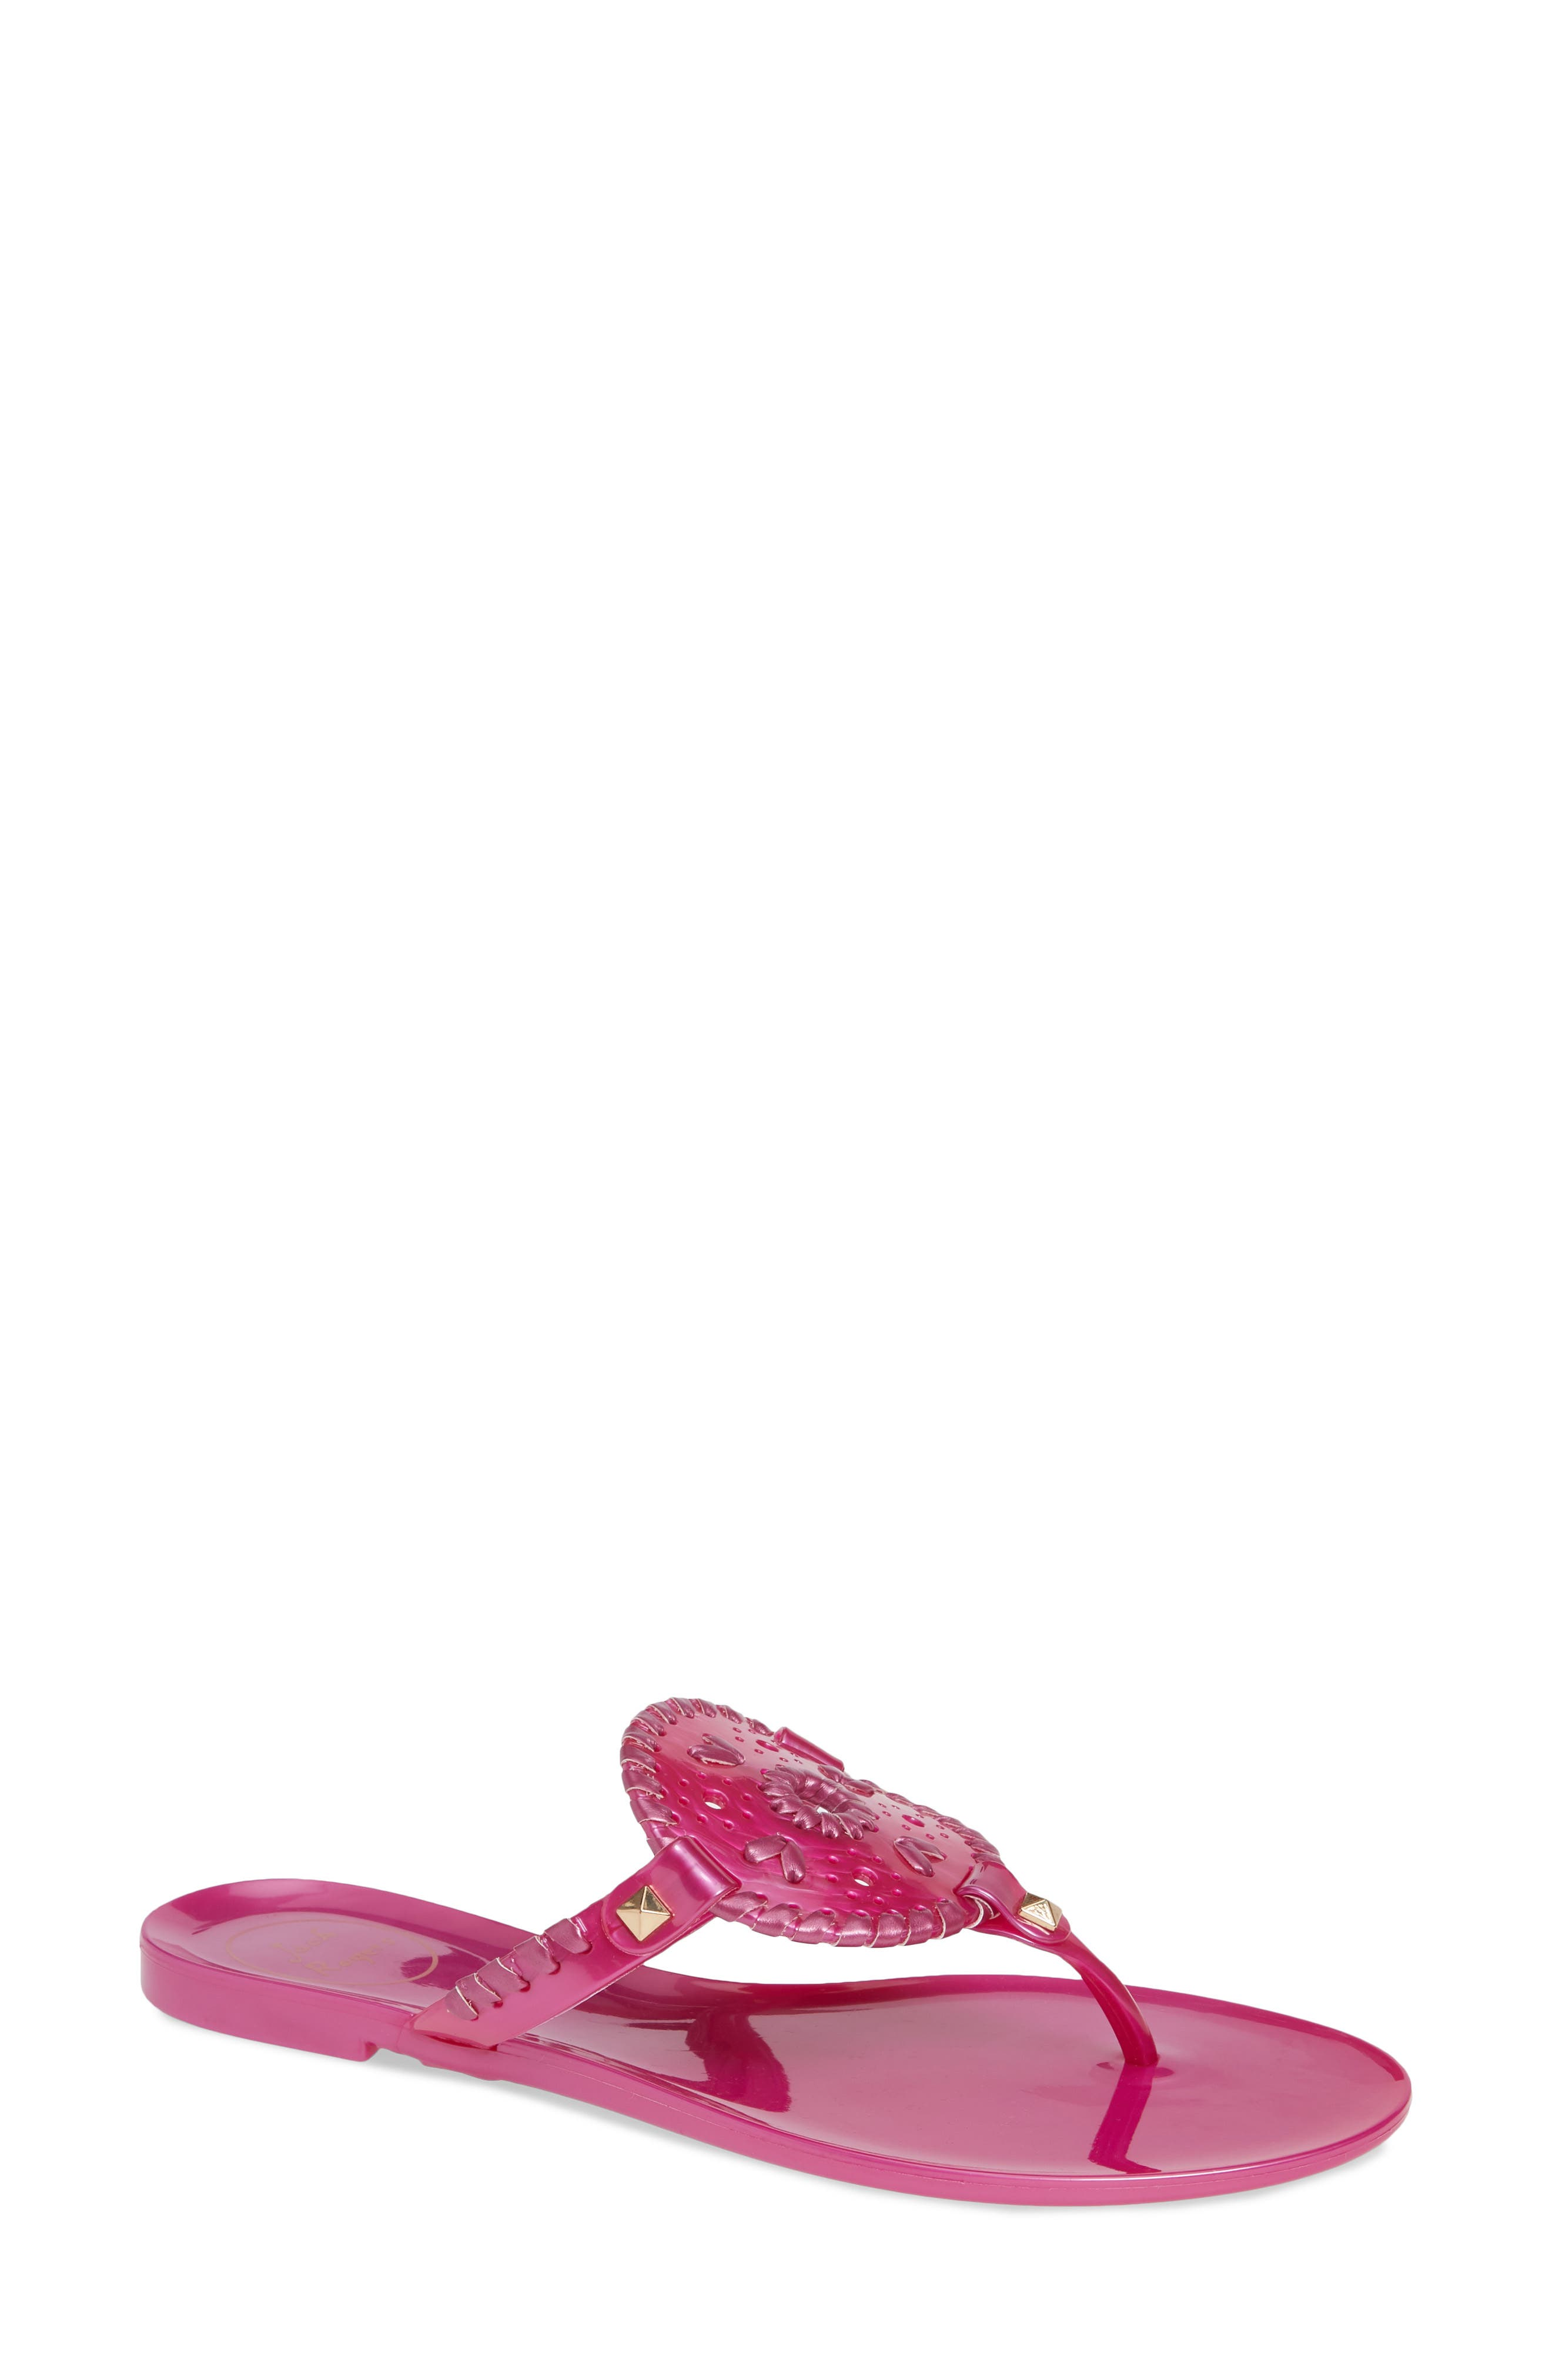 'Georgica' Jelly Flip Flop,                         Main,                         color, BRIGHT PINK